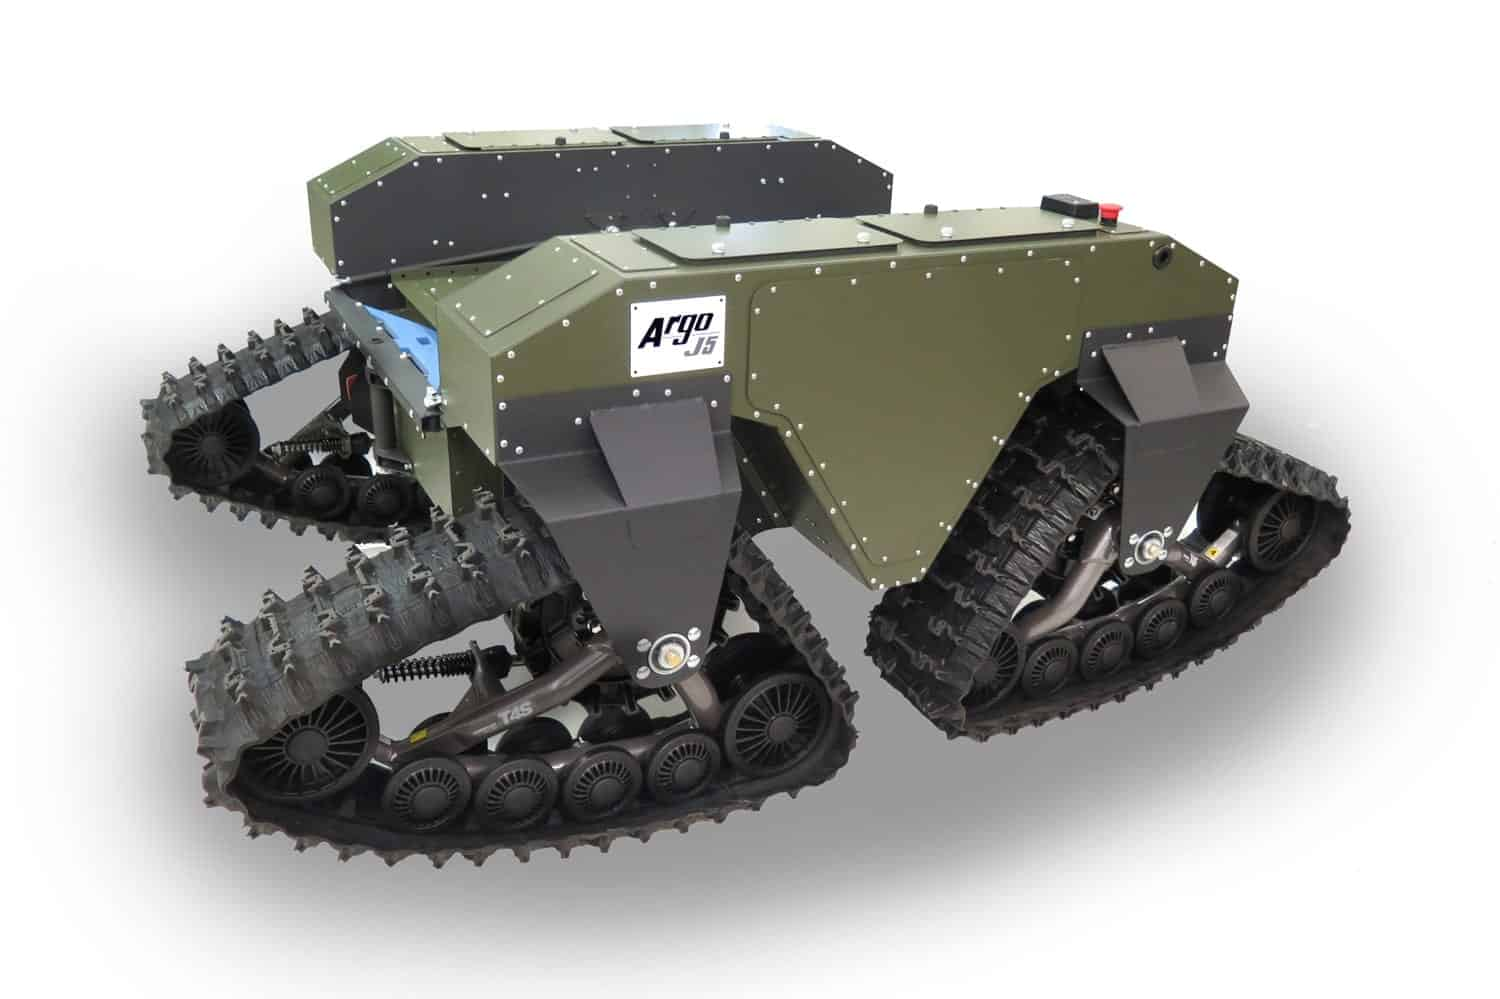 drone manufactures with Argo J5 Tracked Ugv on Successful Farming With Technology The New Era Blog 14 as well Excavator Shovel besides Home furthermore Dji Maintain Market Share In The Usa also The Unmanned Aircraft System UAS Part One Not A Drone.